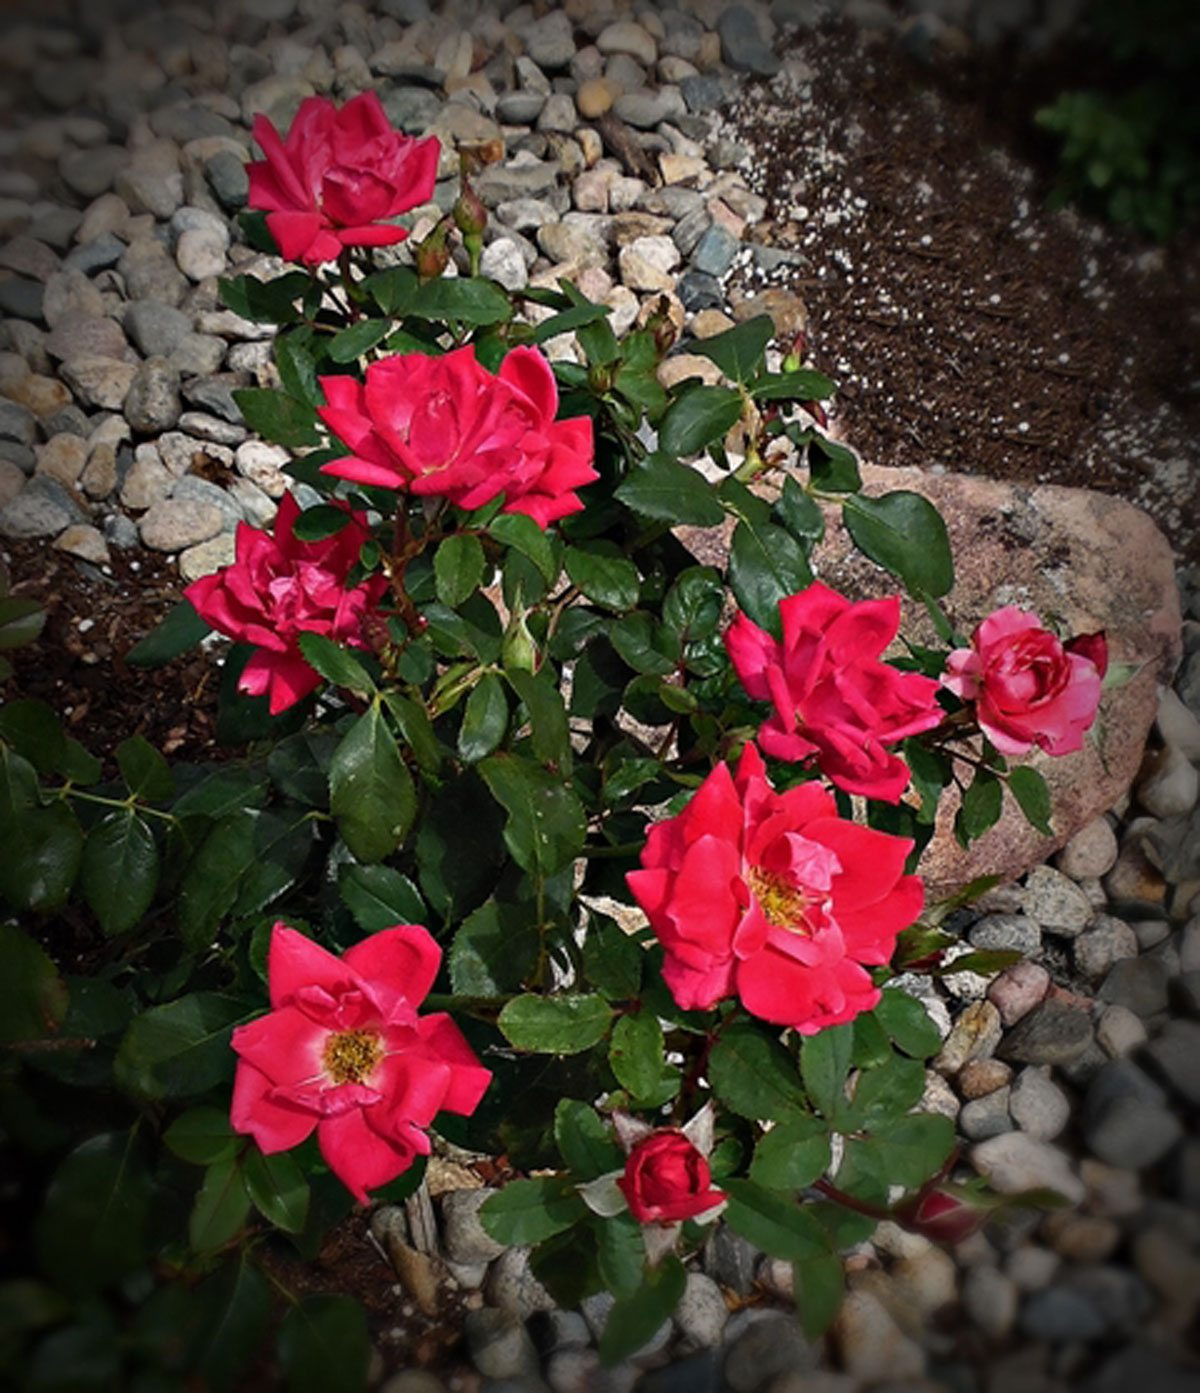 Roses In Garden: Knock Outs Not Blooming: Reasons For No Blooms On Knock